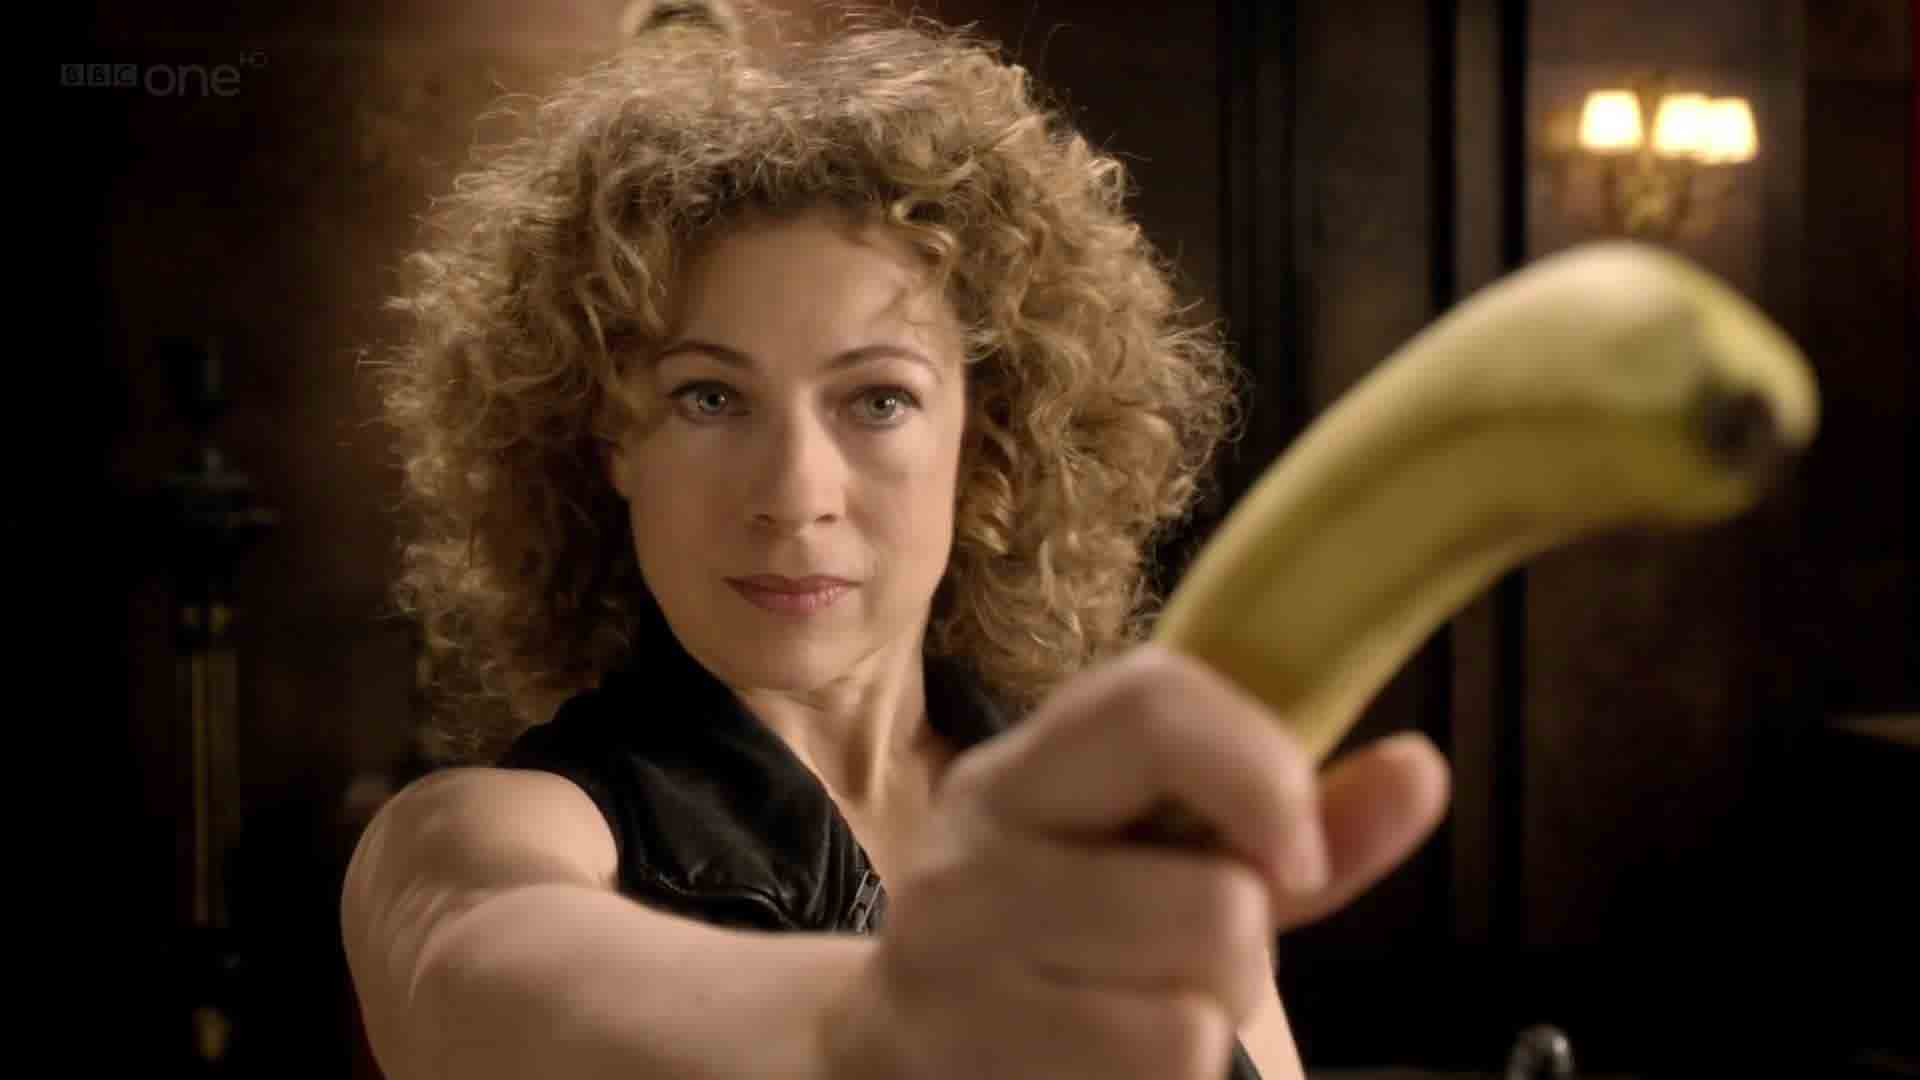 River Song holding a banana like a pistol